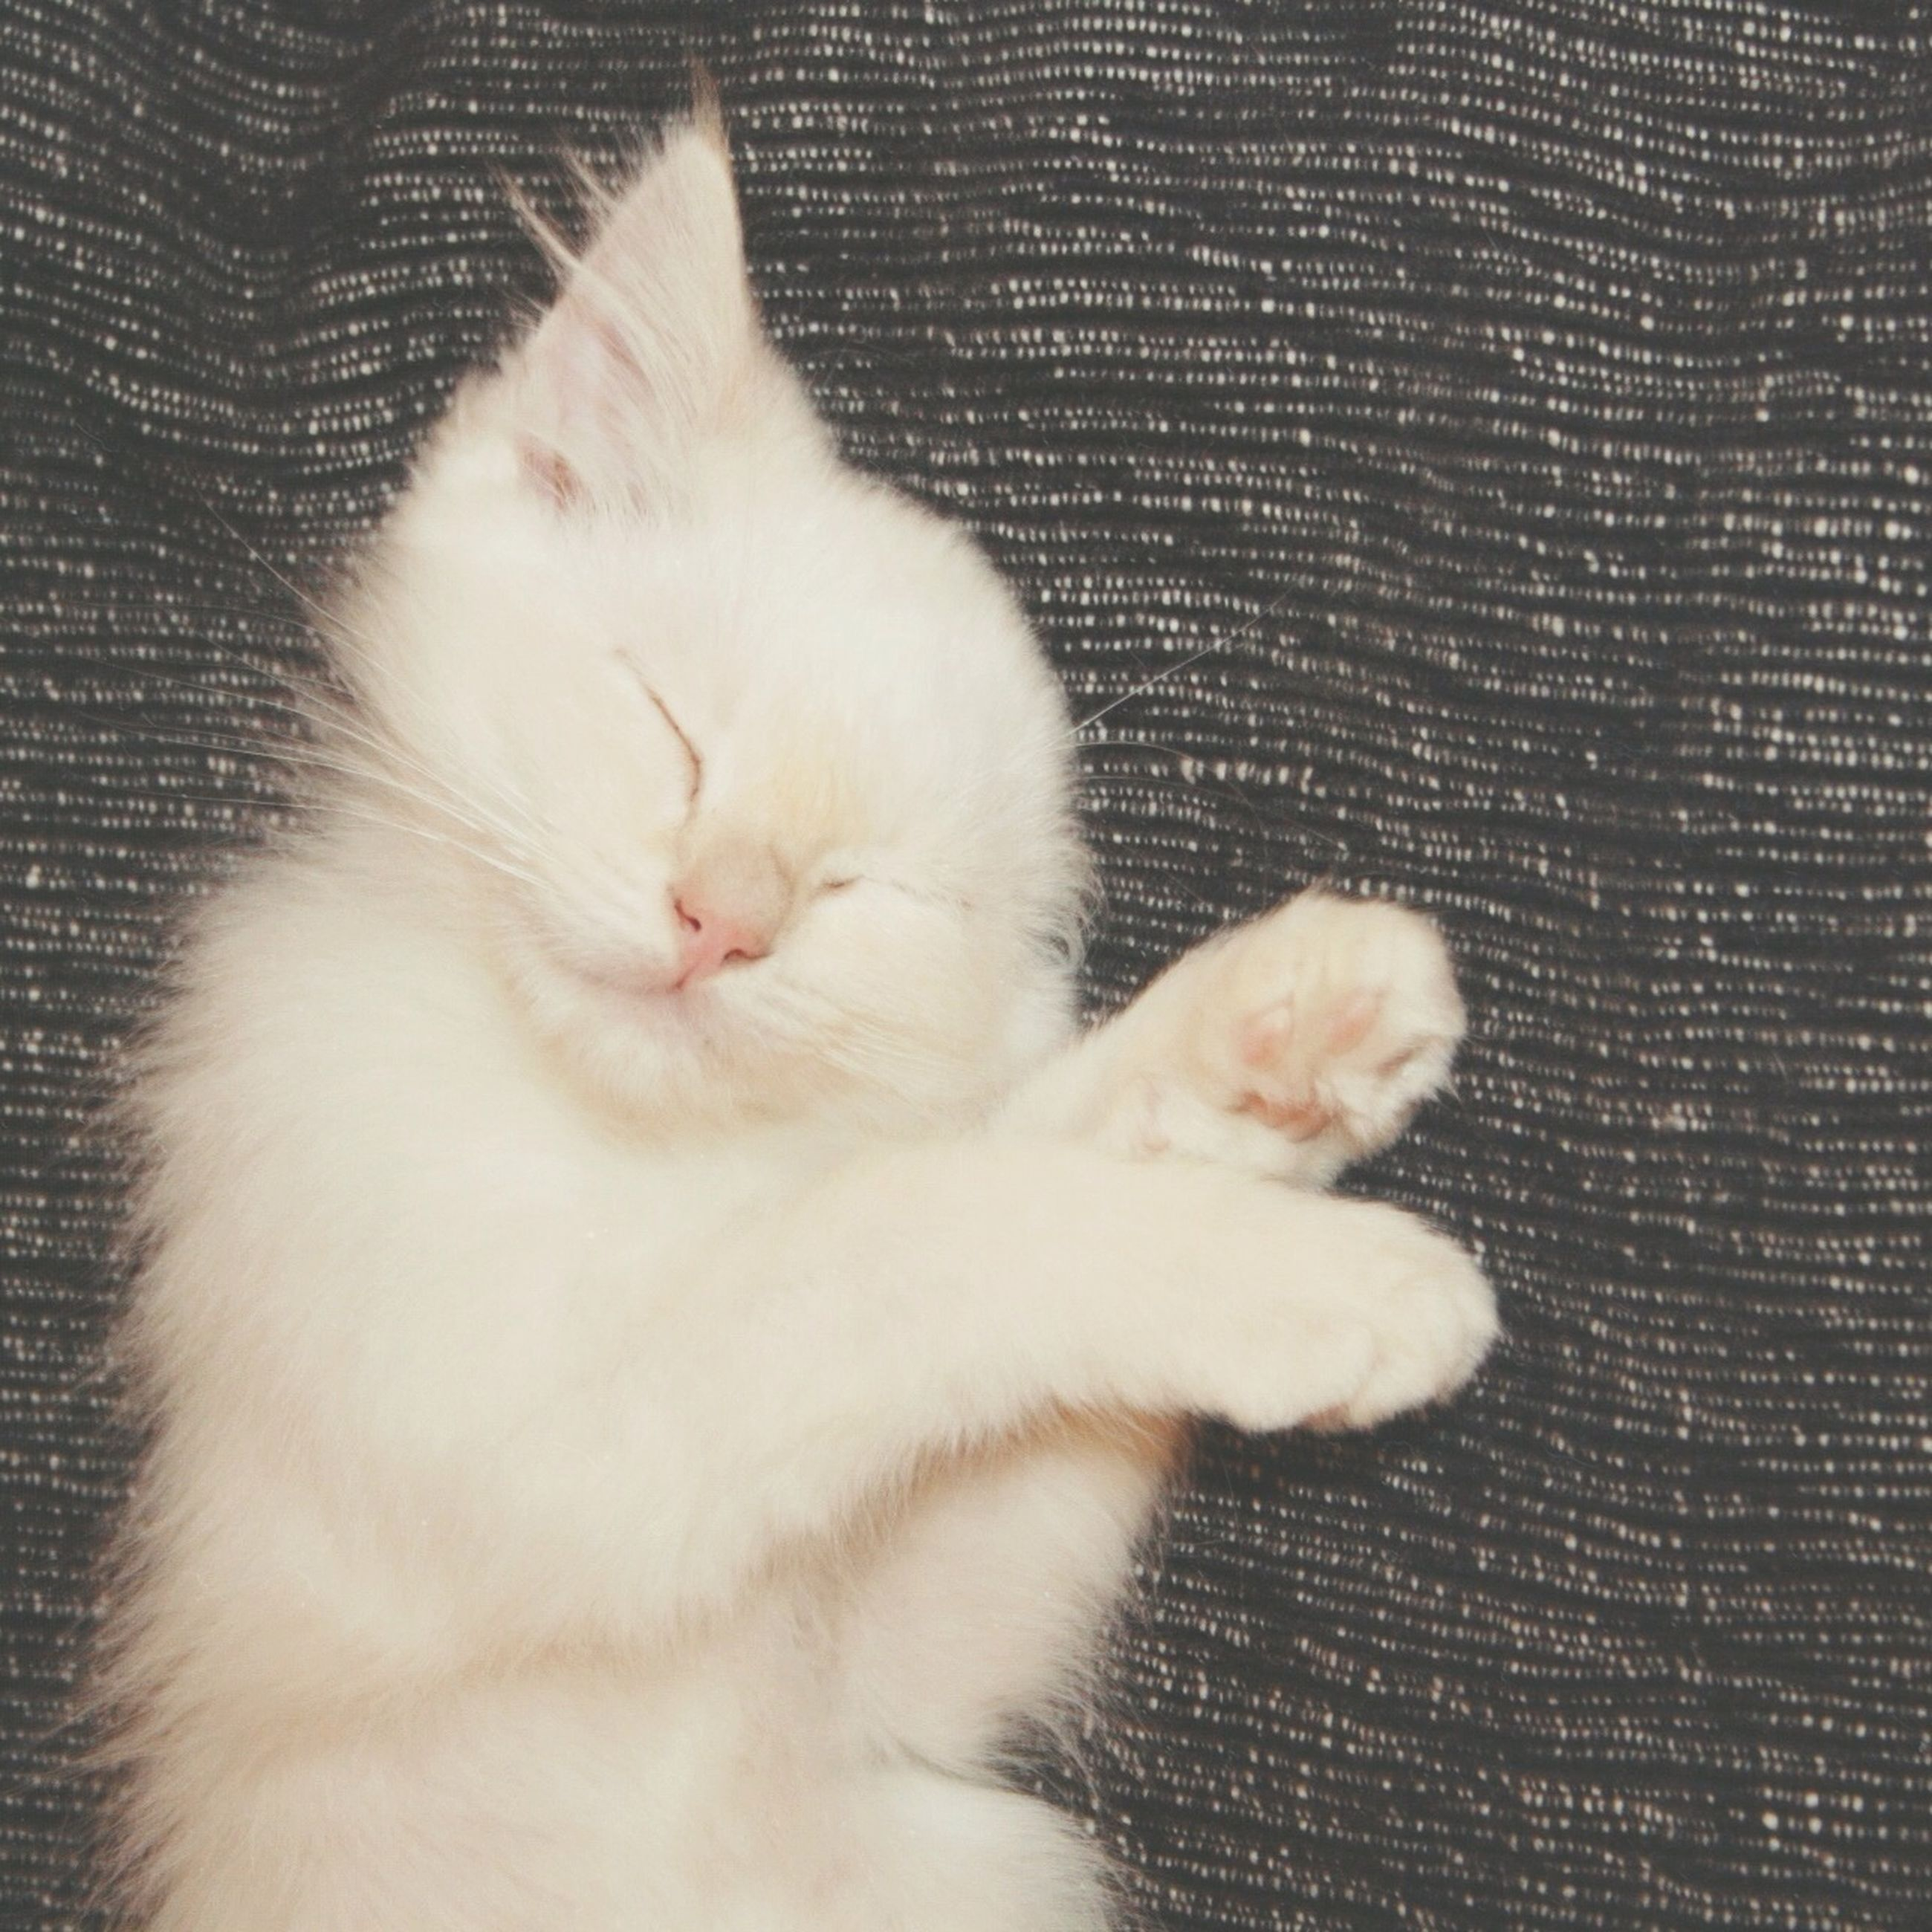 domestic cat, cat, pets, feline, domestic animals, animal themes, one animal, mammal, indoors, whisker, relaxation, white color, sleeping, close-up, resting, eyes closed, lying down, animal head, no people, white